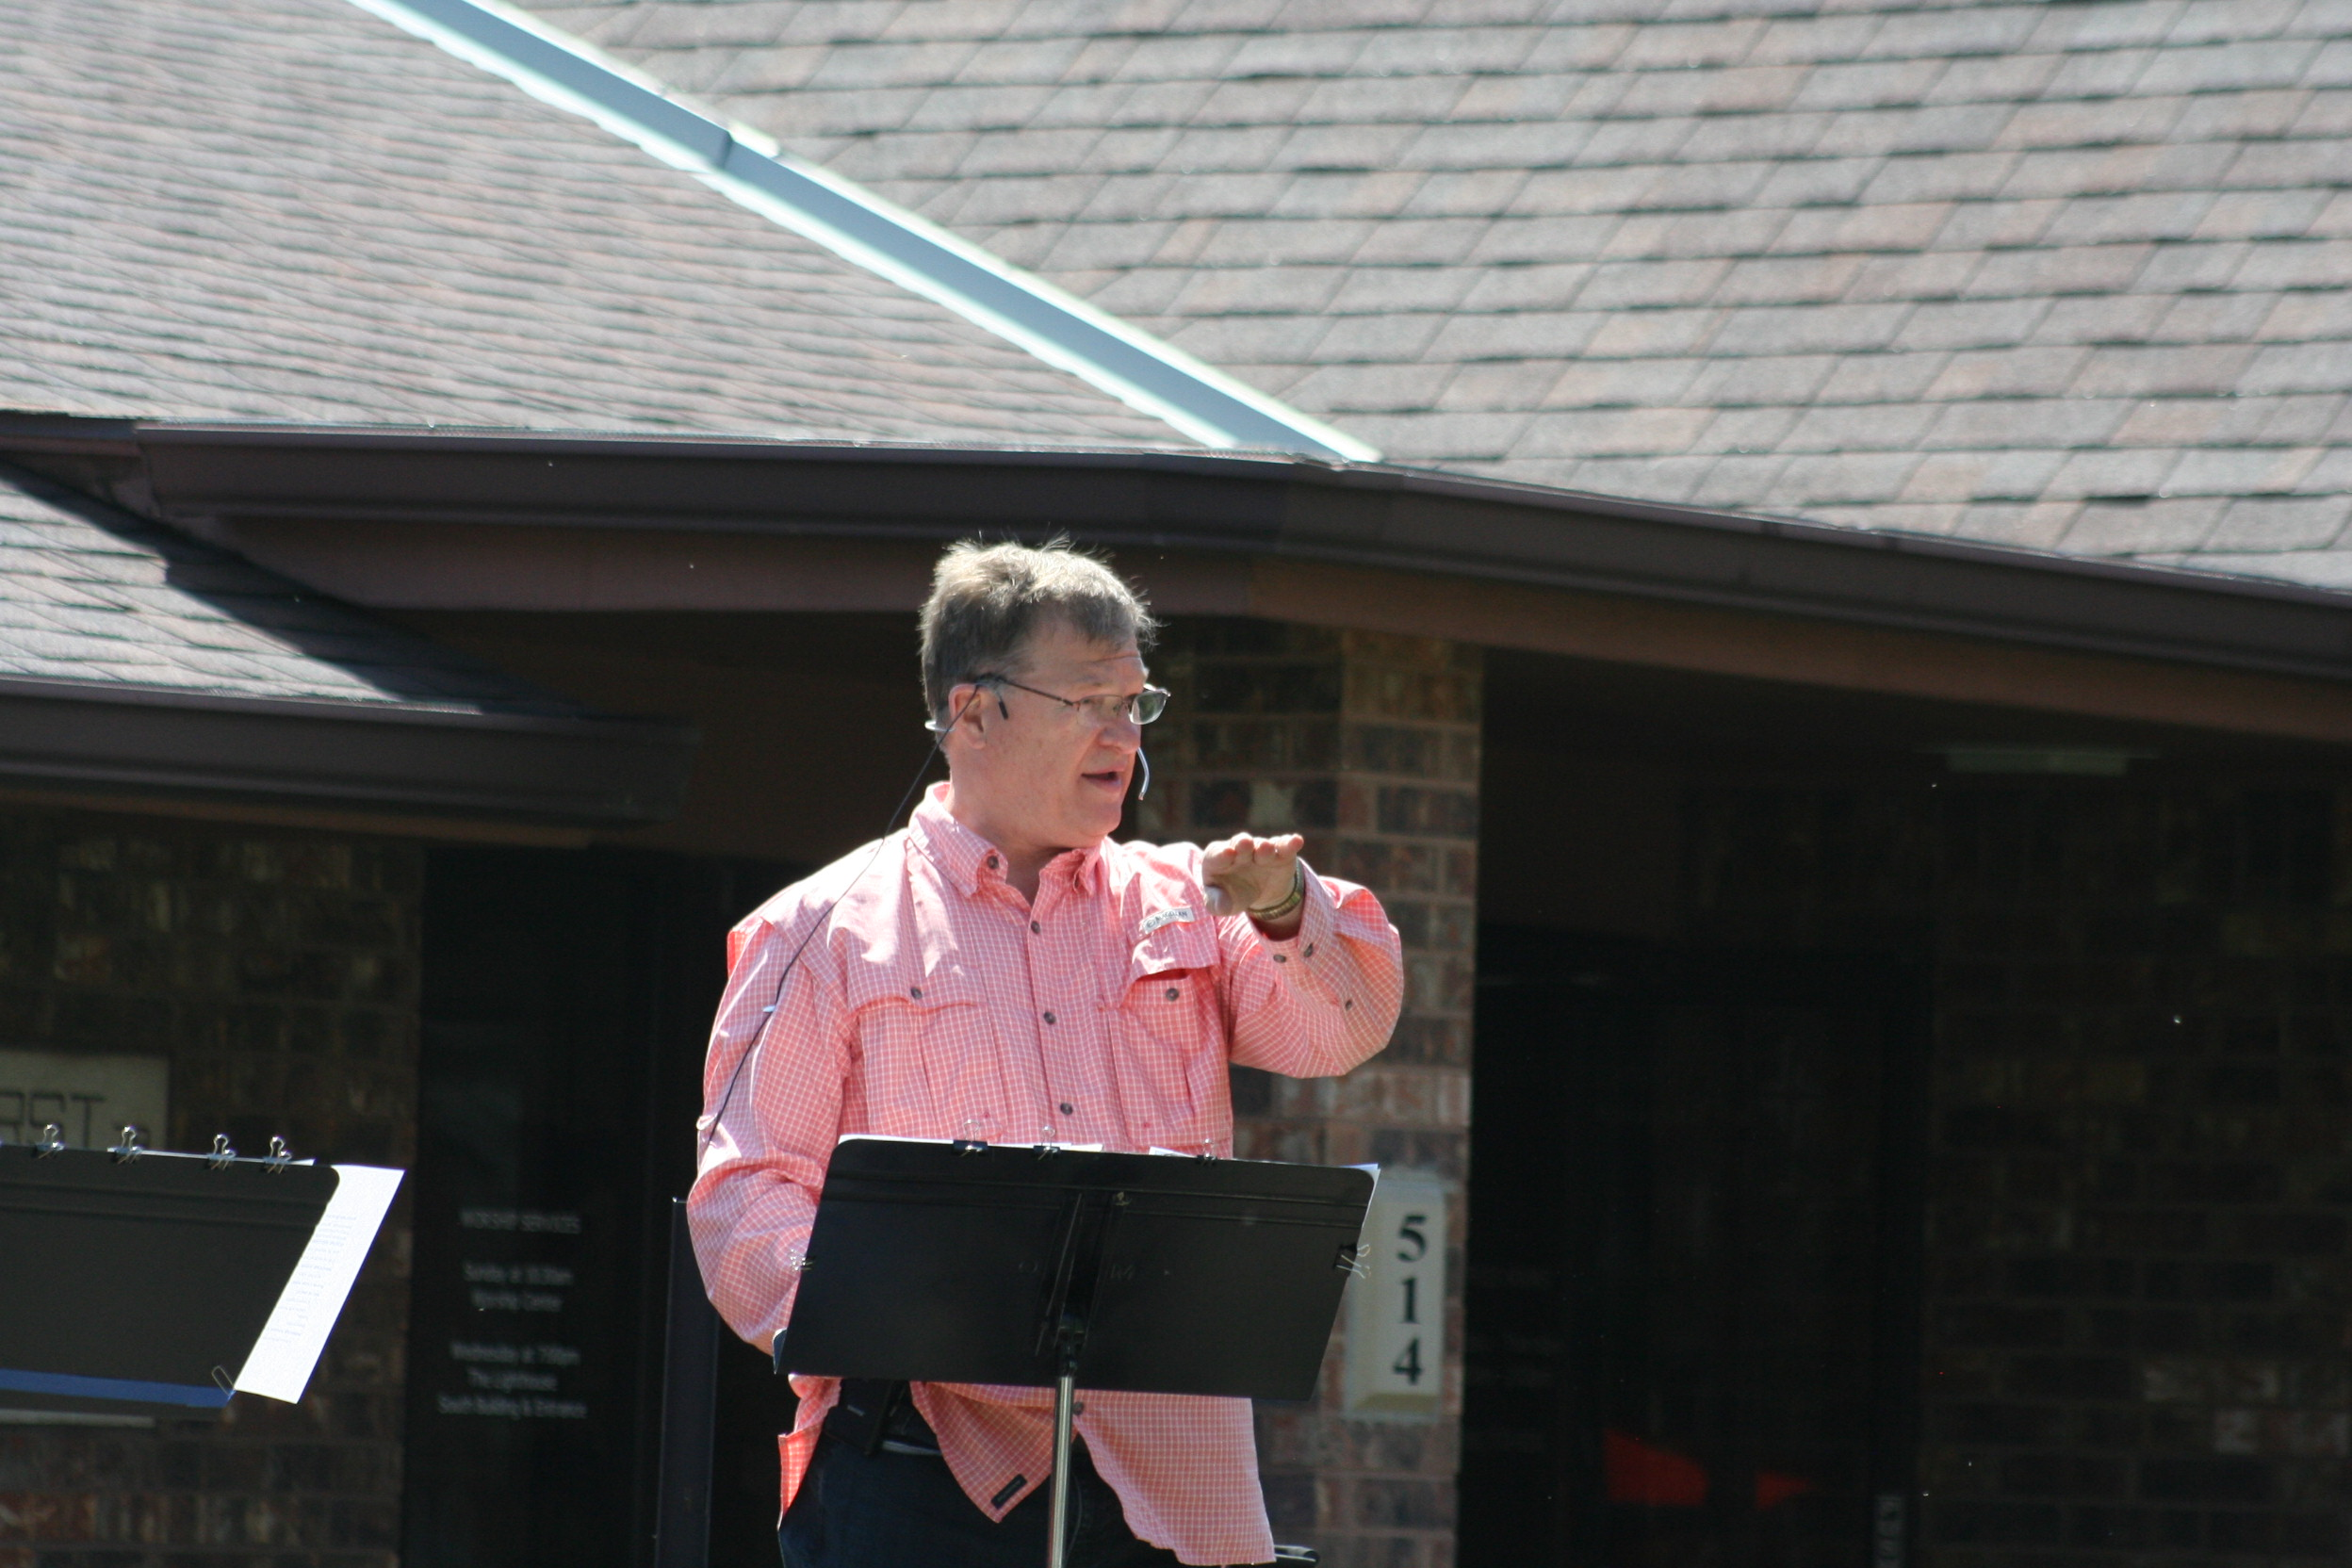 Sedgwick pastor has followed his calling for over half a century